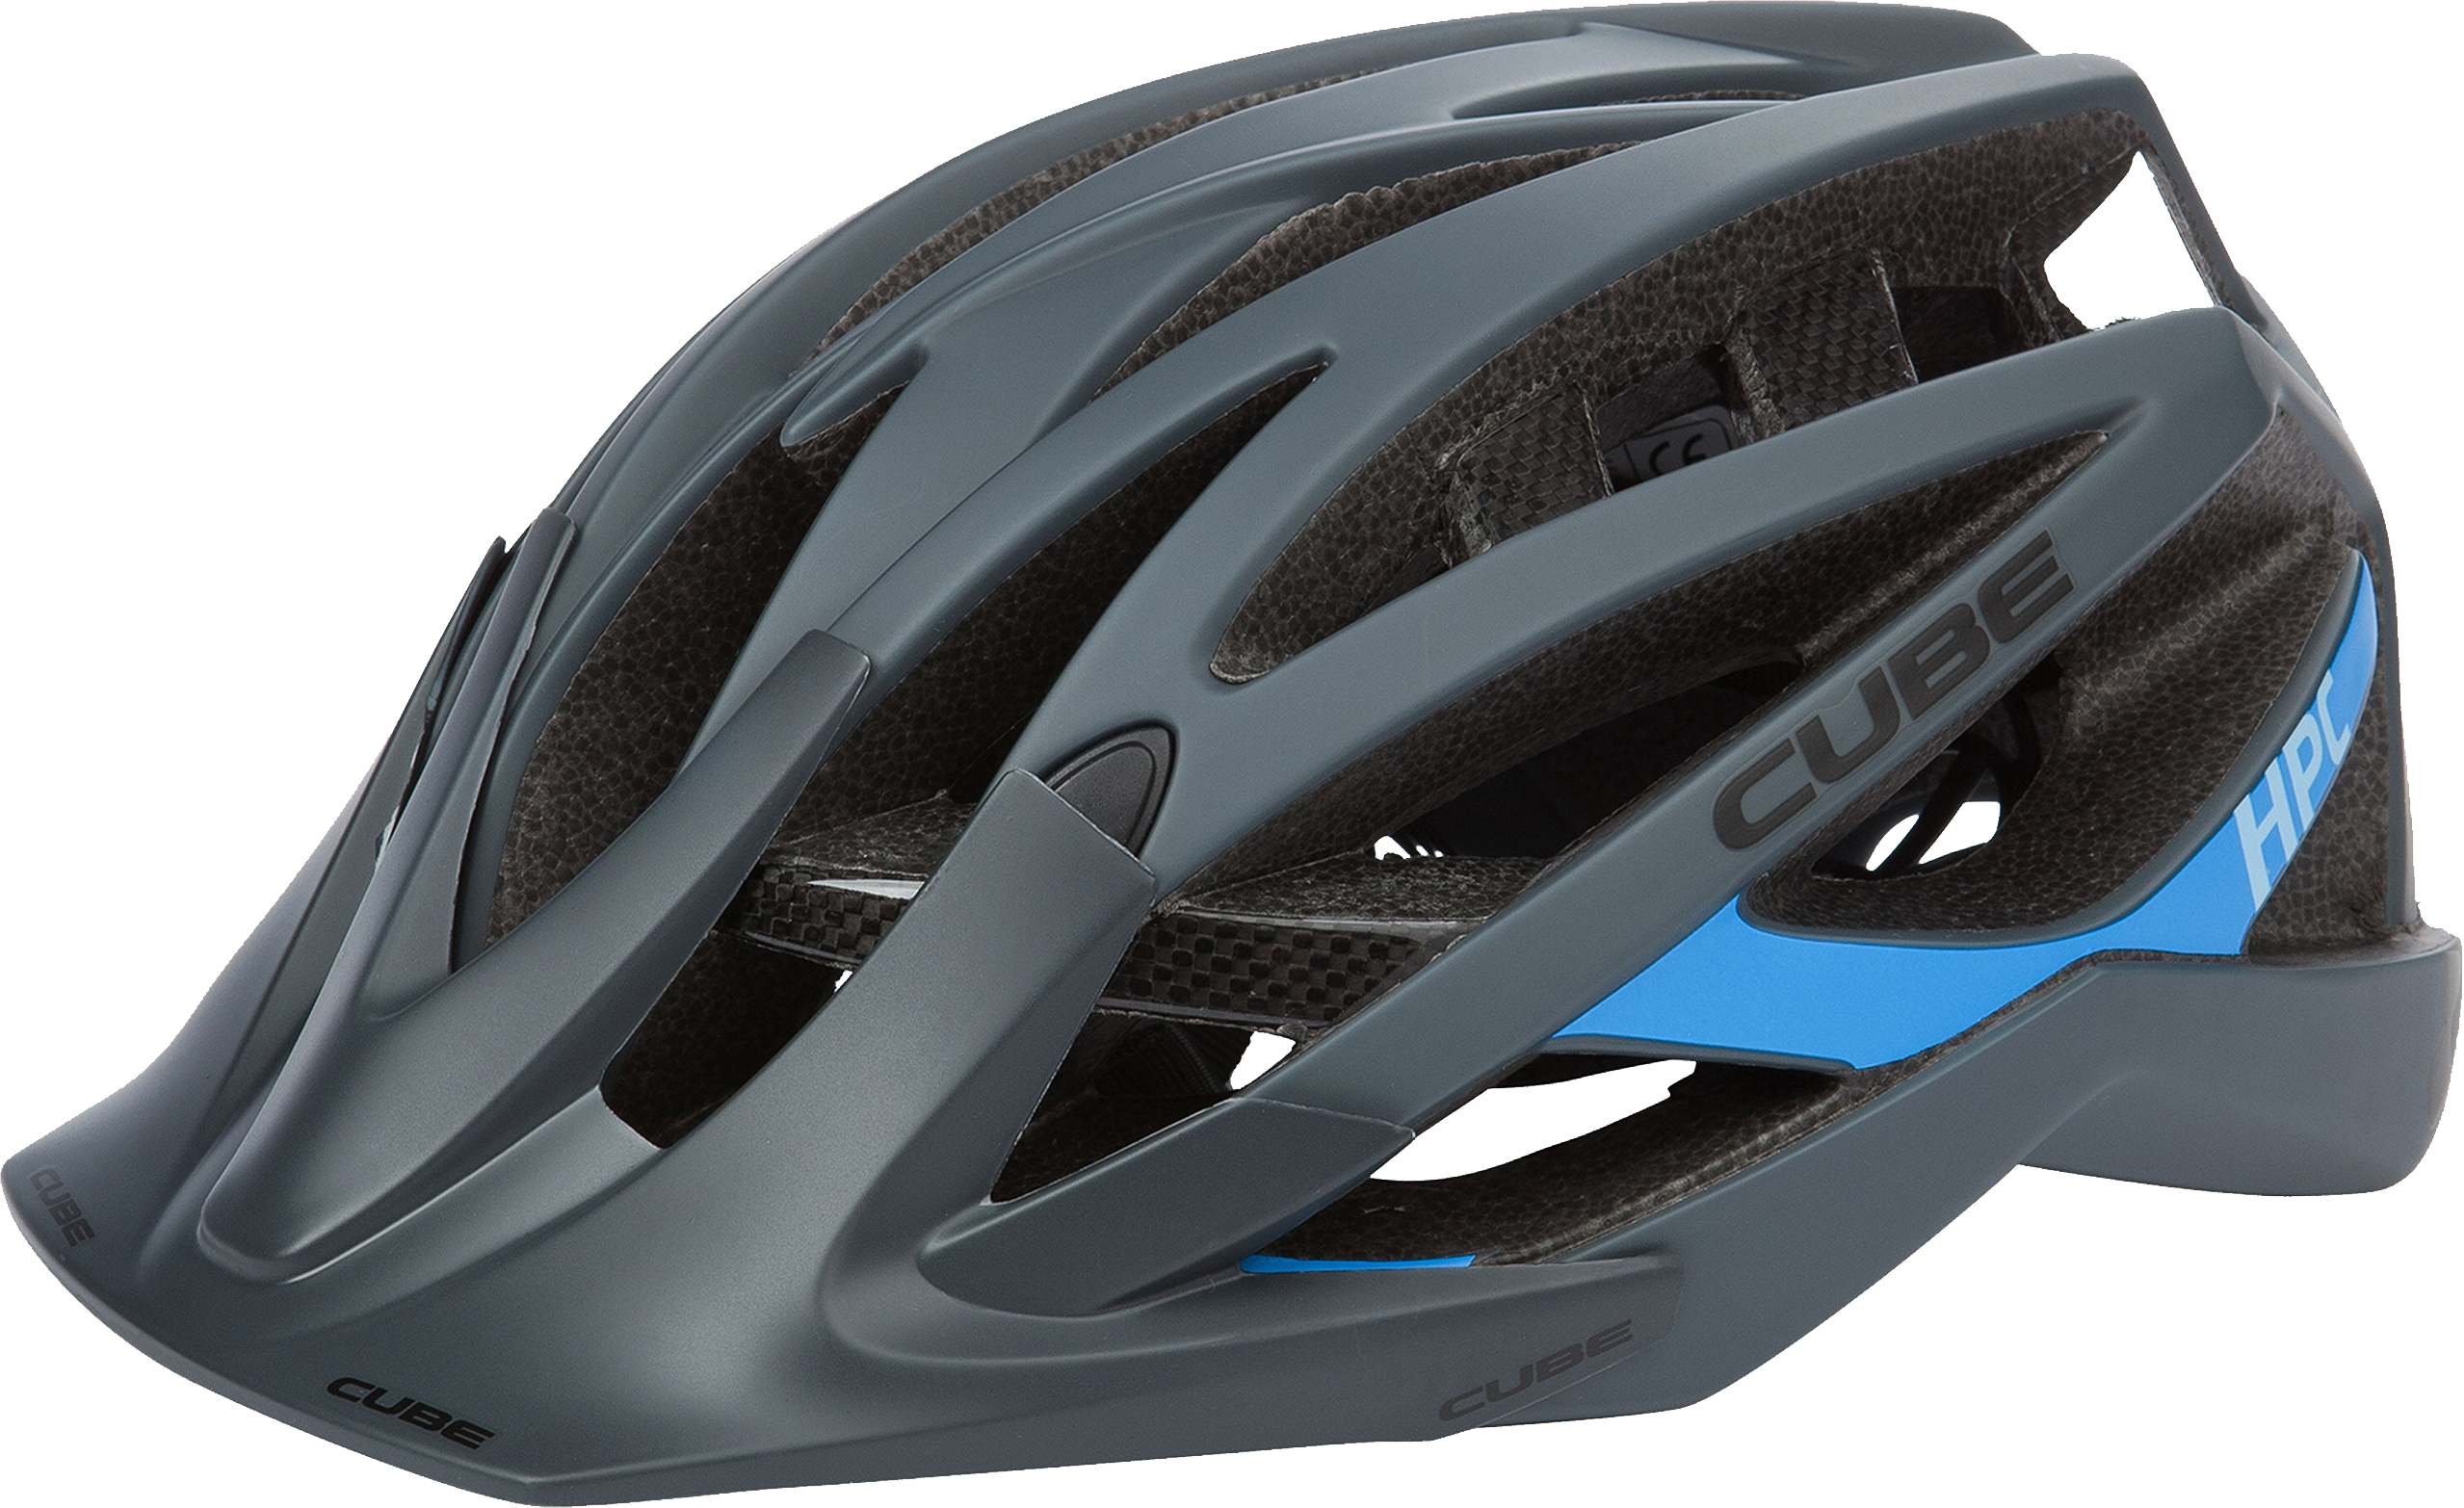 Bike helmet clipart transparent background image transparent library Bicycle helmet Cycling Ski helmet - Bicycle helmet PNG image png ... image transparent library